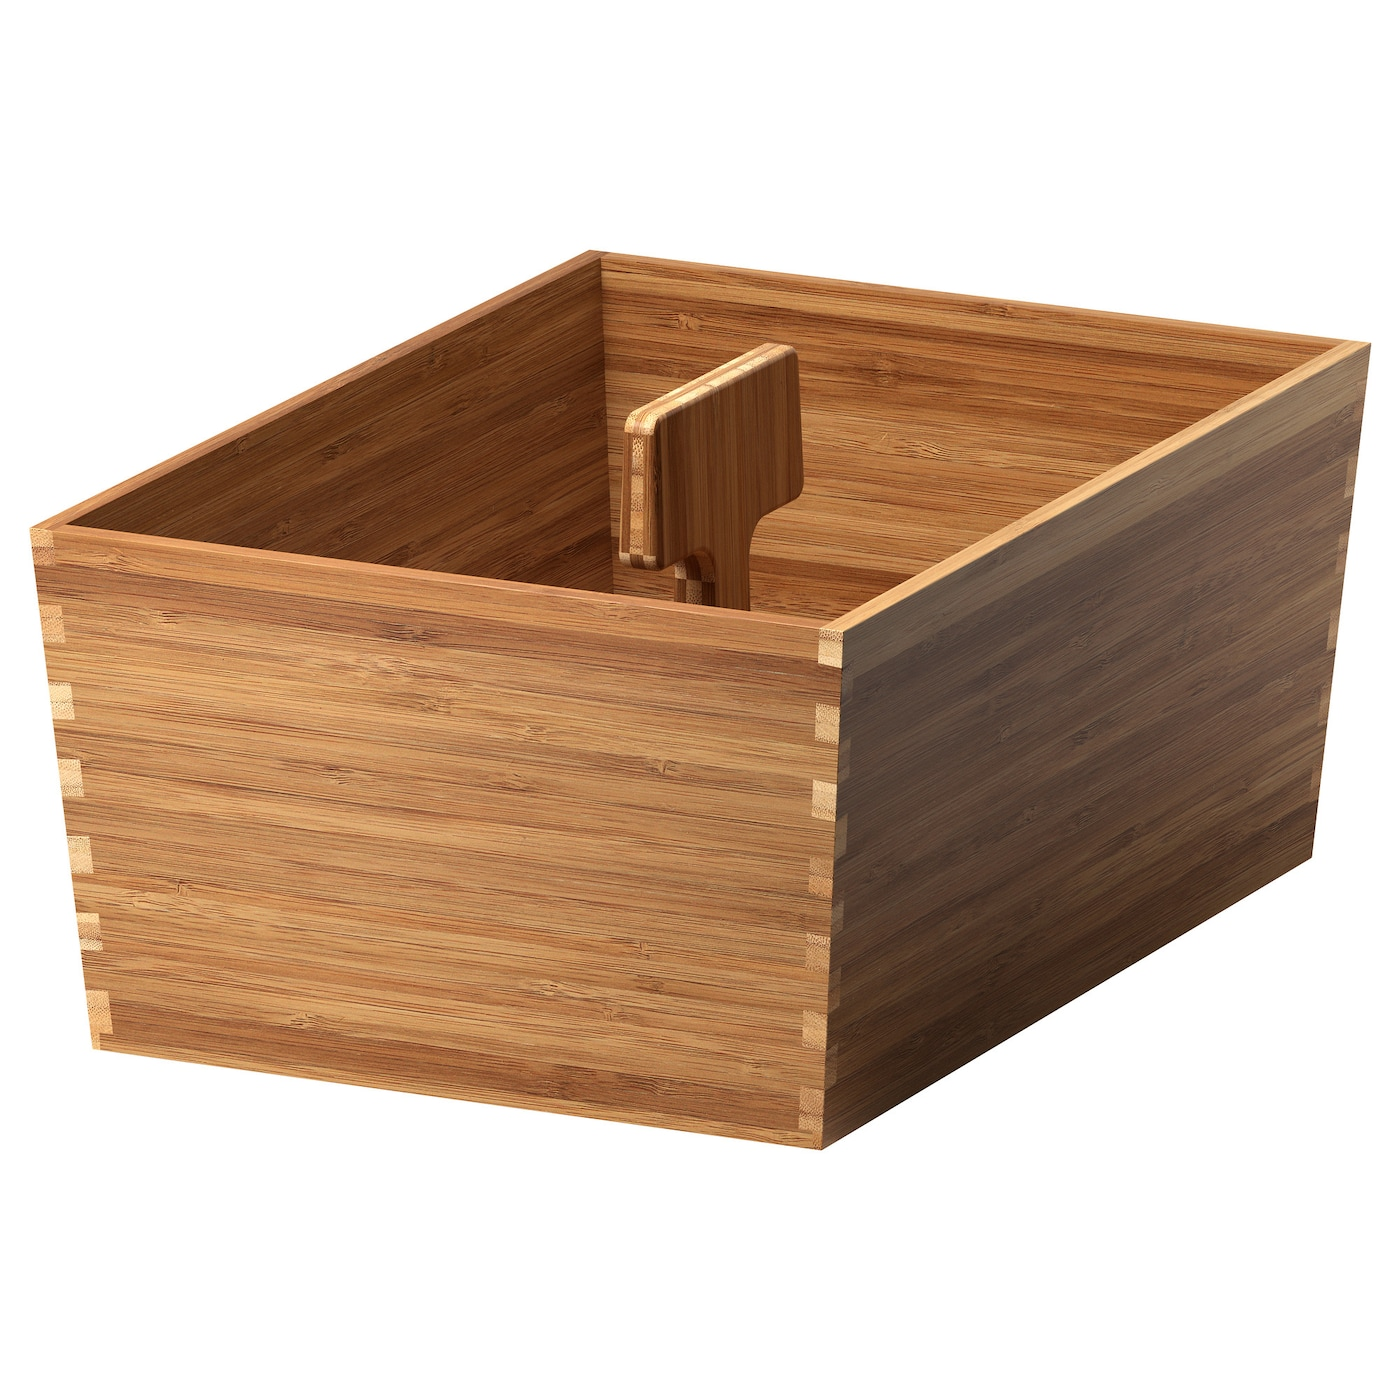 IKEA VARIERA box with handle